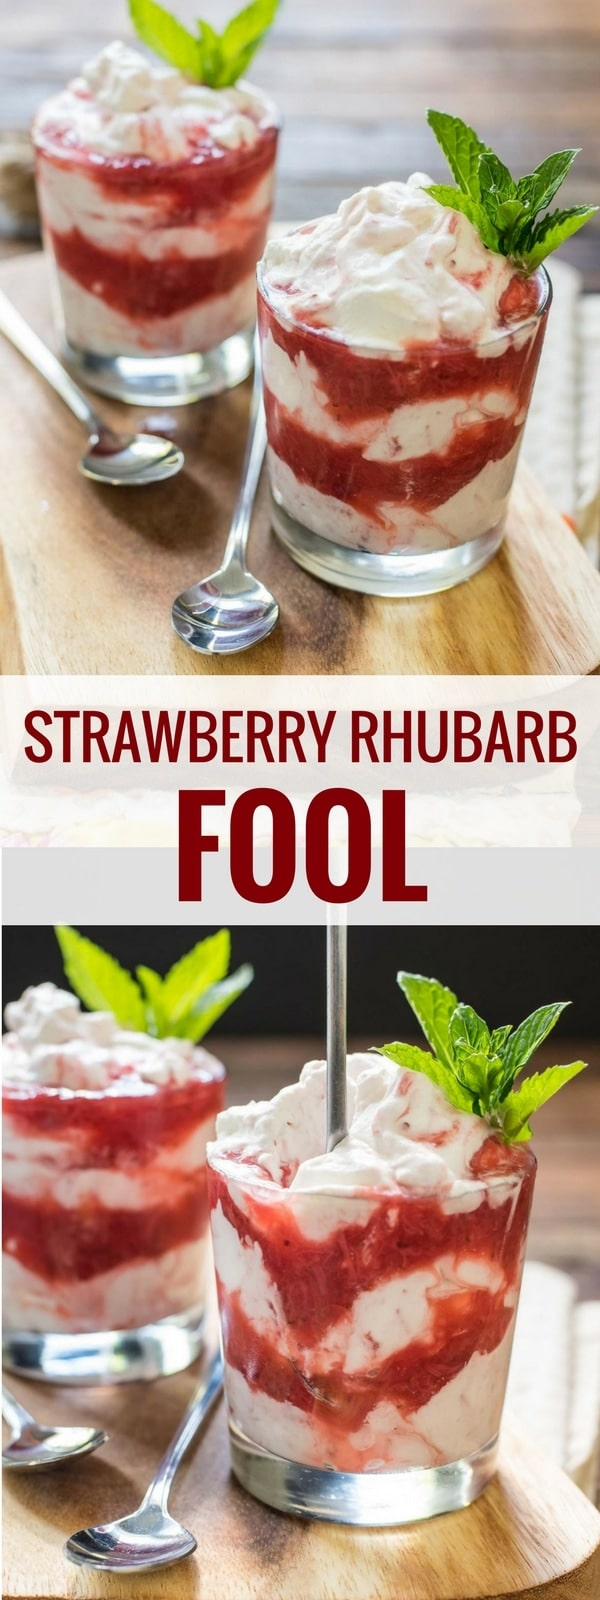 This Strawberry Rhubarb Fool is a refreshing, creamy dessert that's so easy to make!